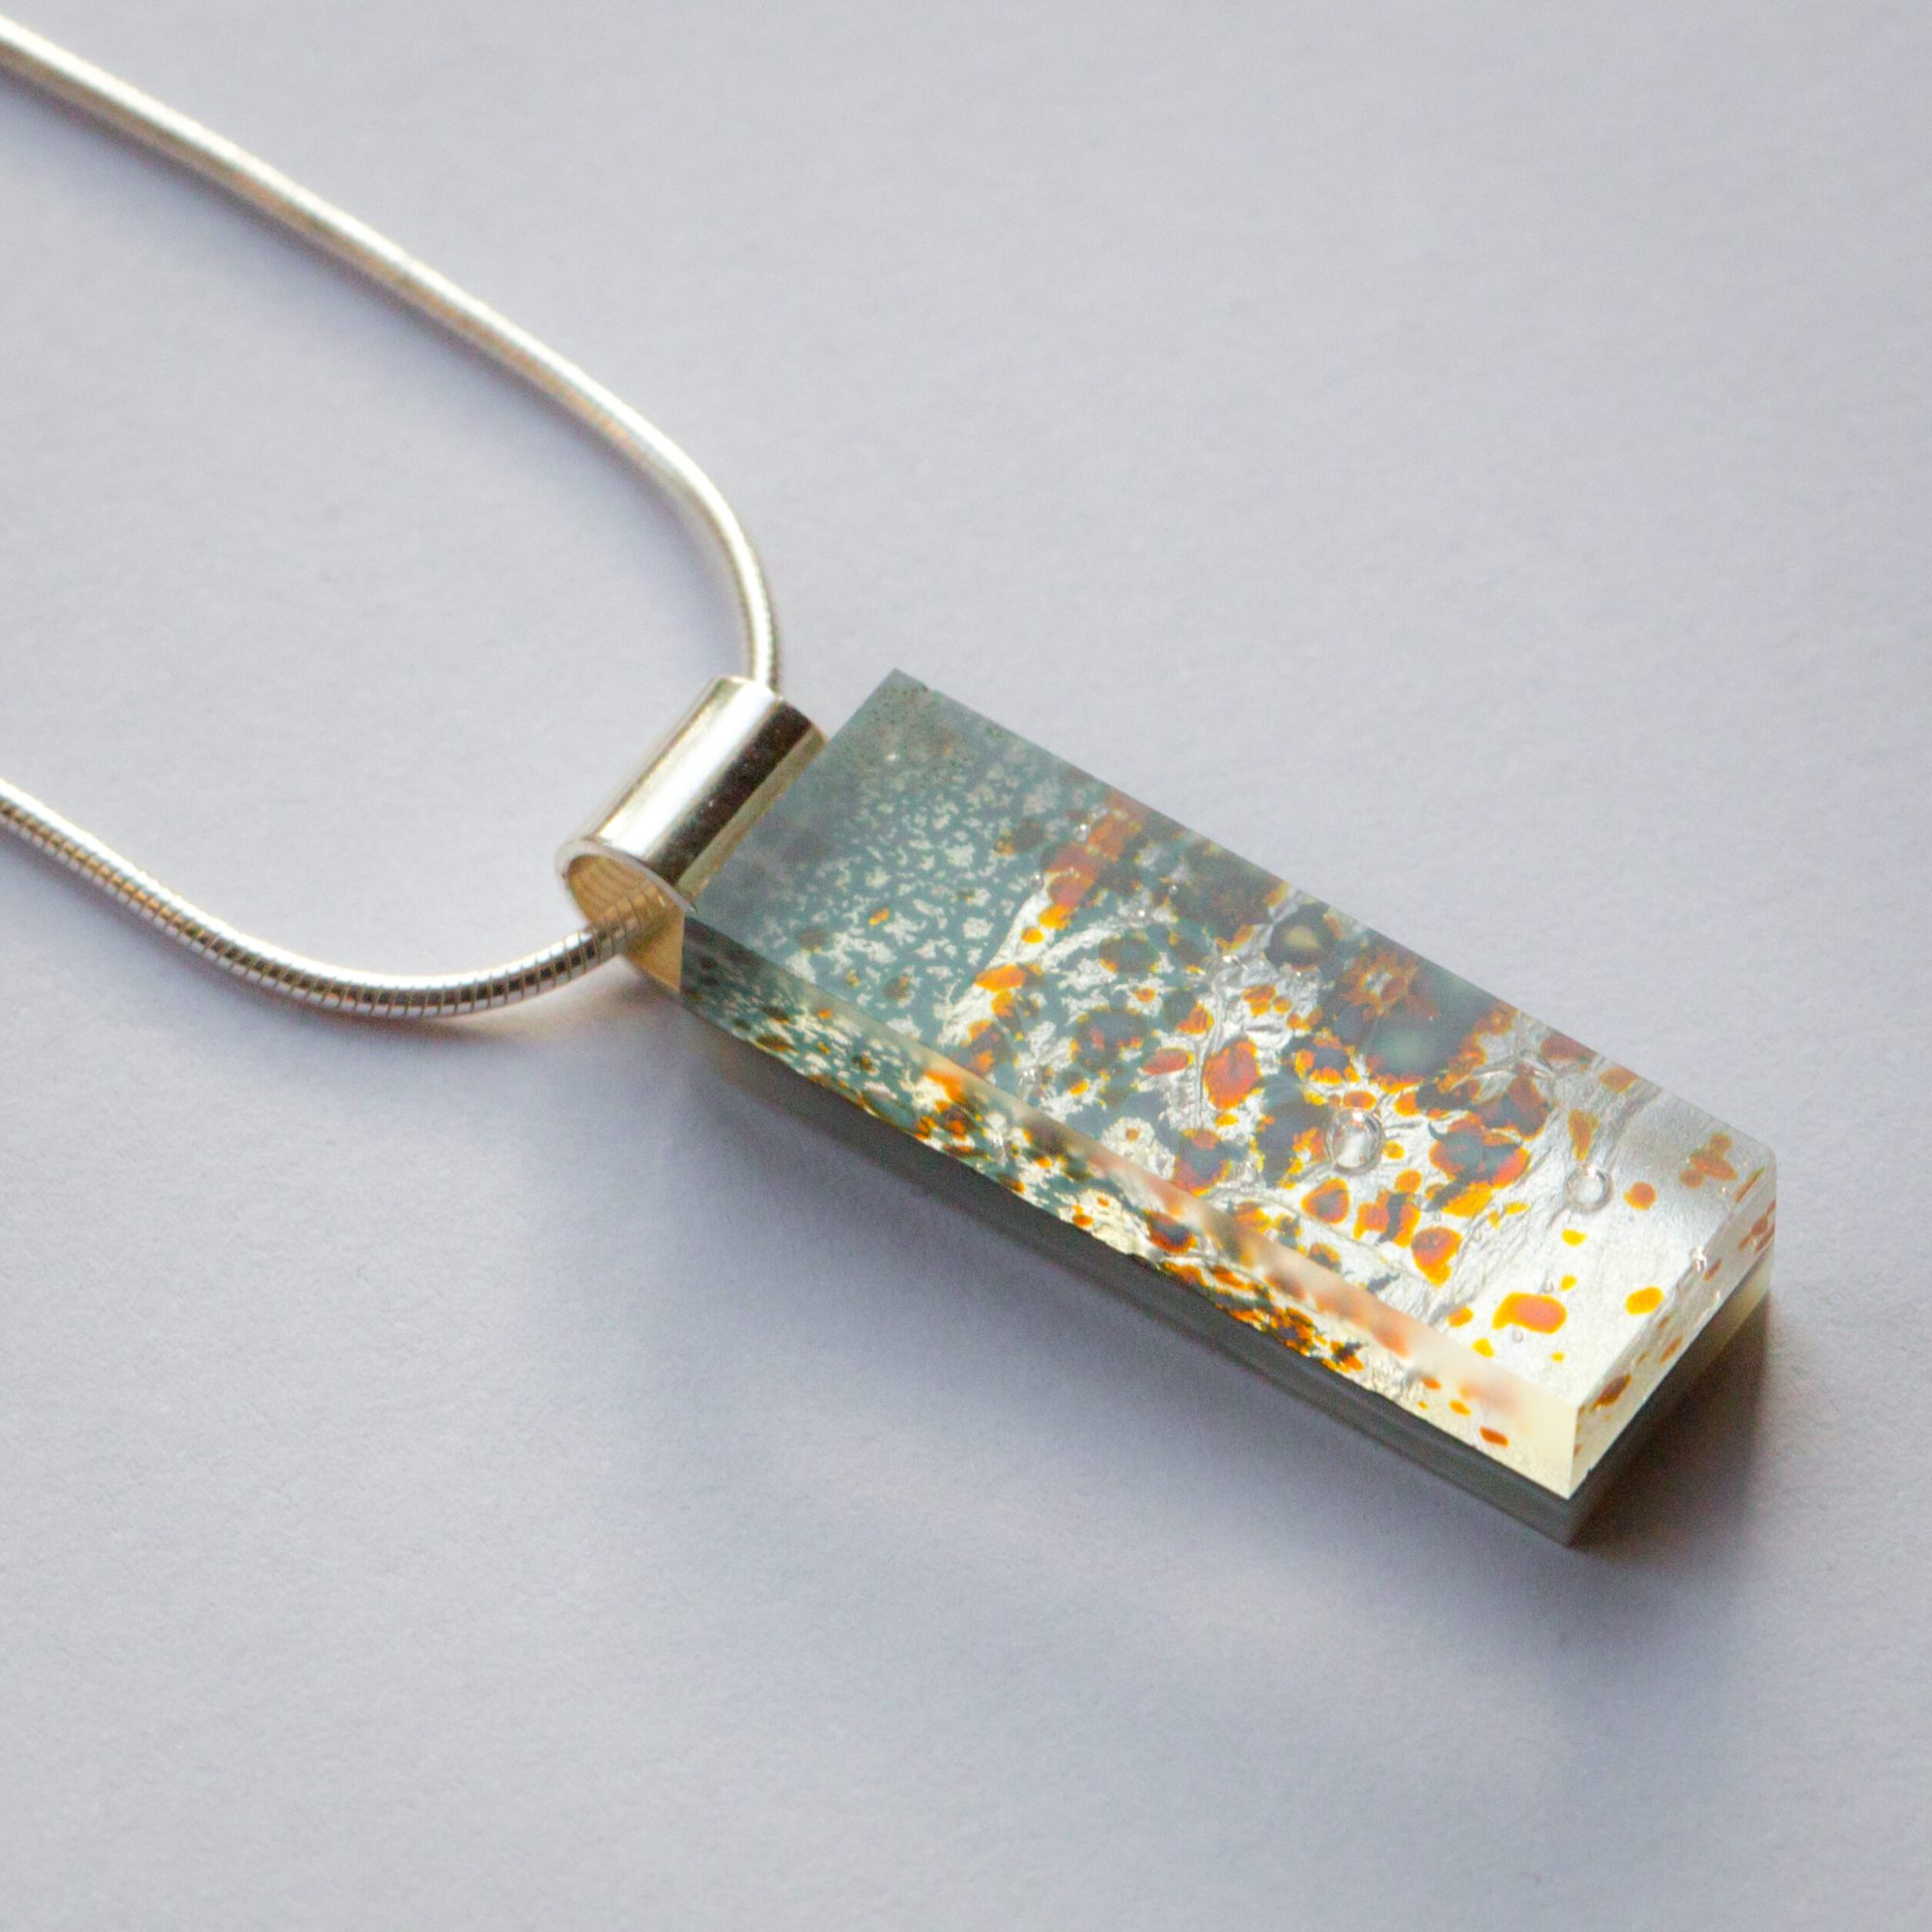 Lucie Harris Glass, small light blue pendant with silver chain